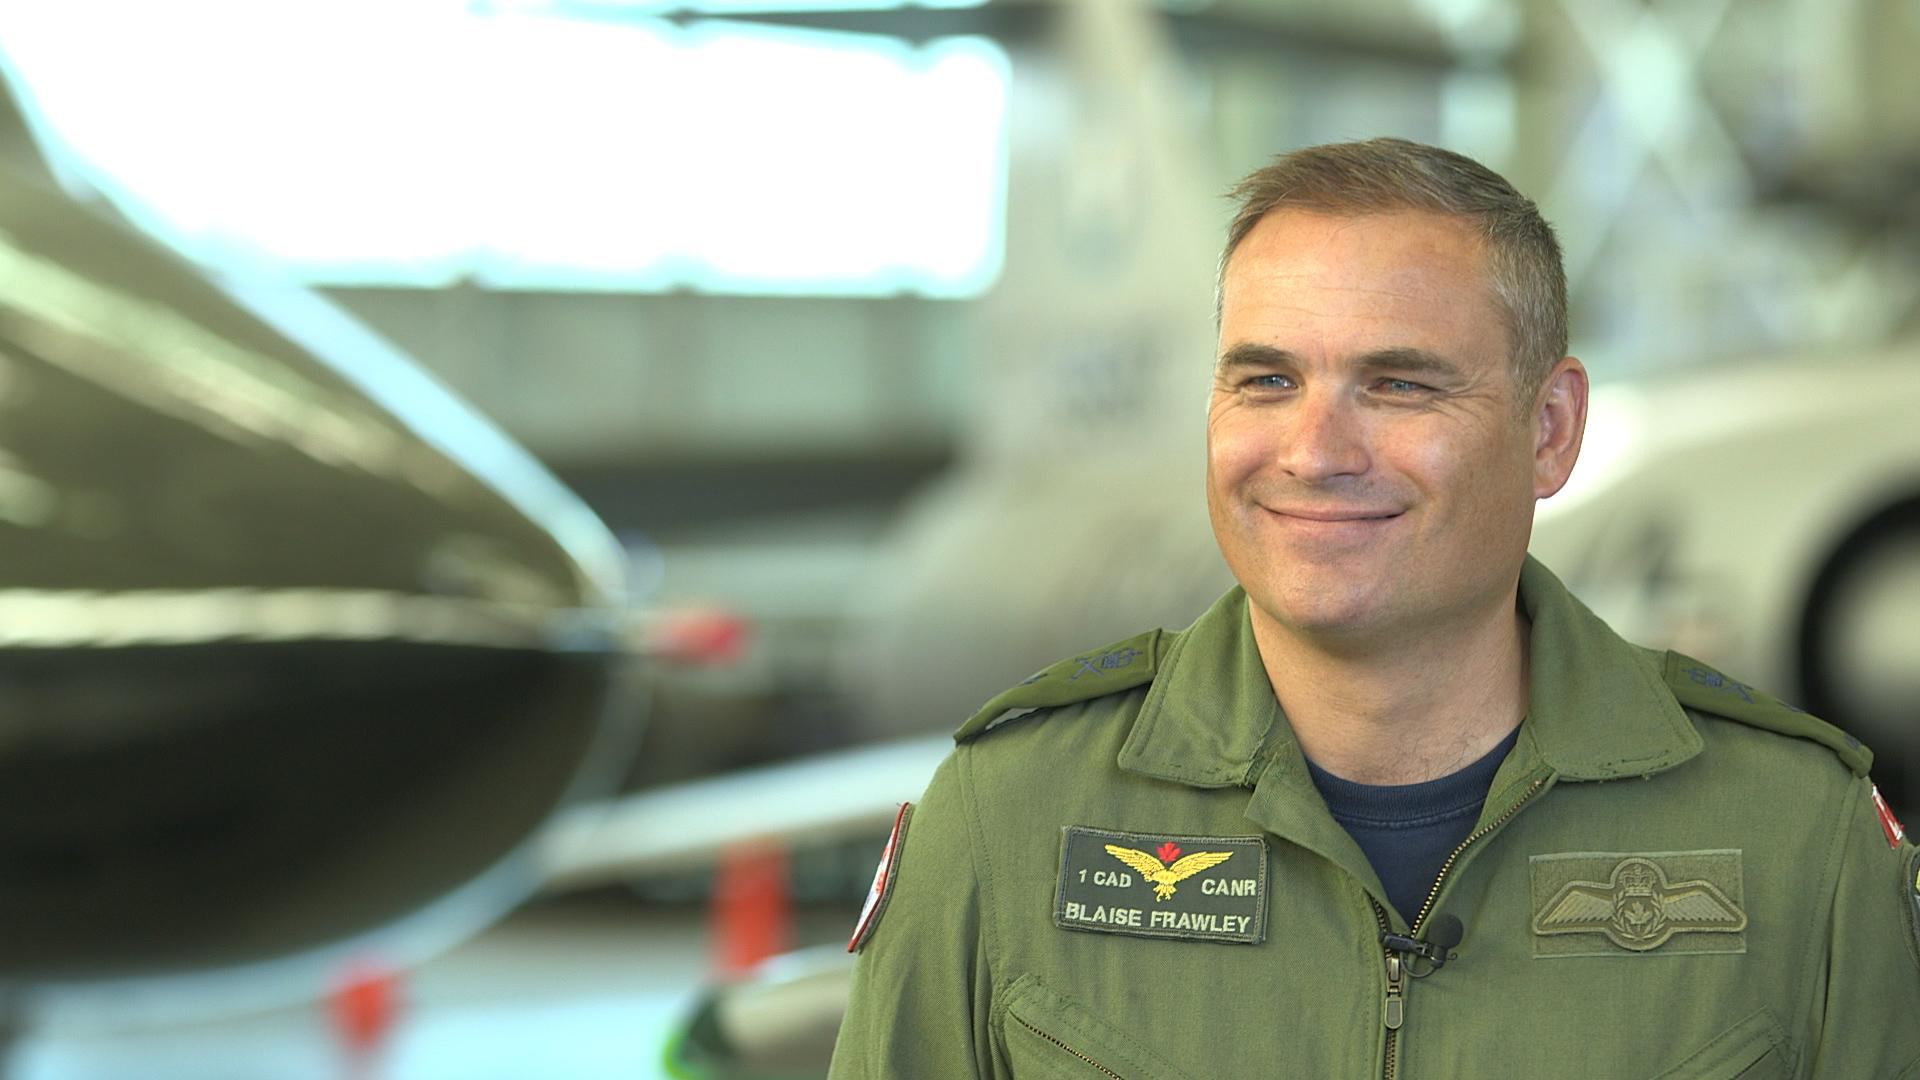 Brigadier-General Blaise Frawley was the Combined Forces Air Component Commander at Exercise Rim of the Pacific (RIMPAC) 2016. In the Forces since 1985, BGen Blaise Frawley was appointed Director General Space on June 9, 2016. (rcaf)